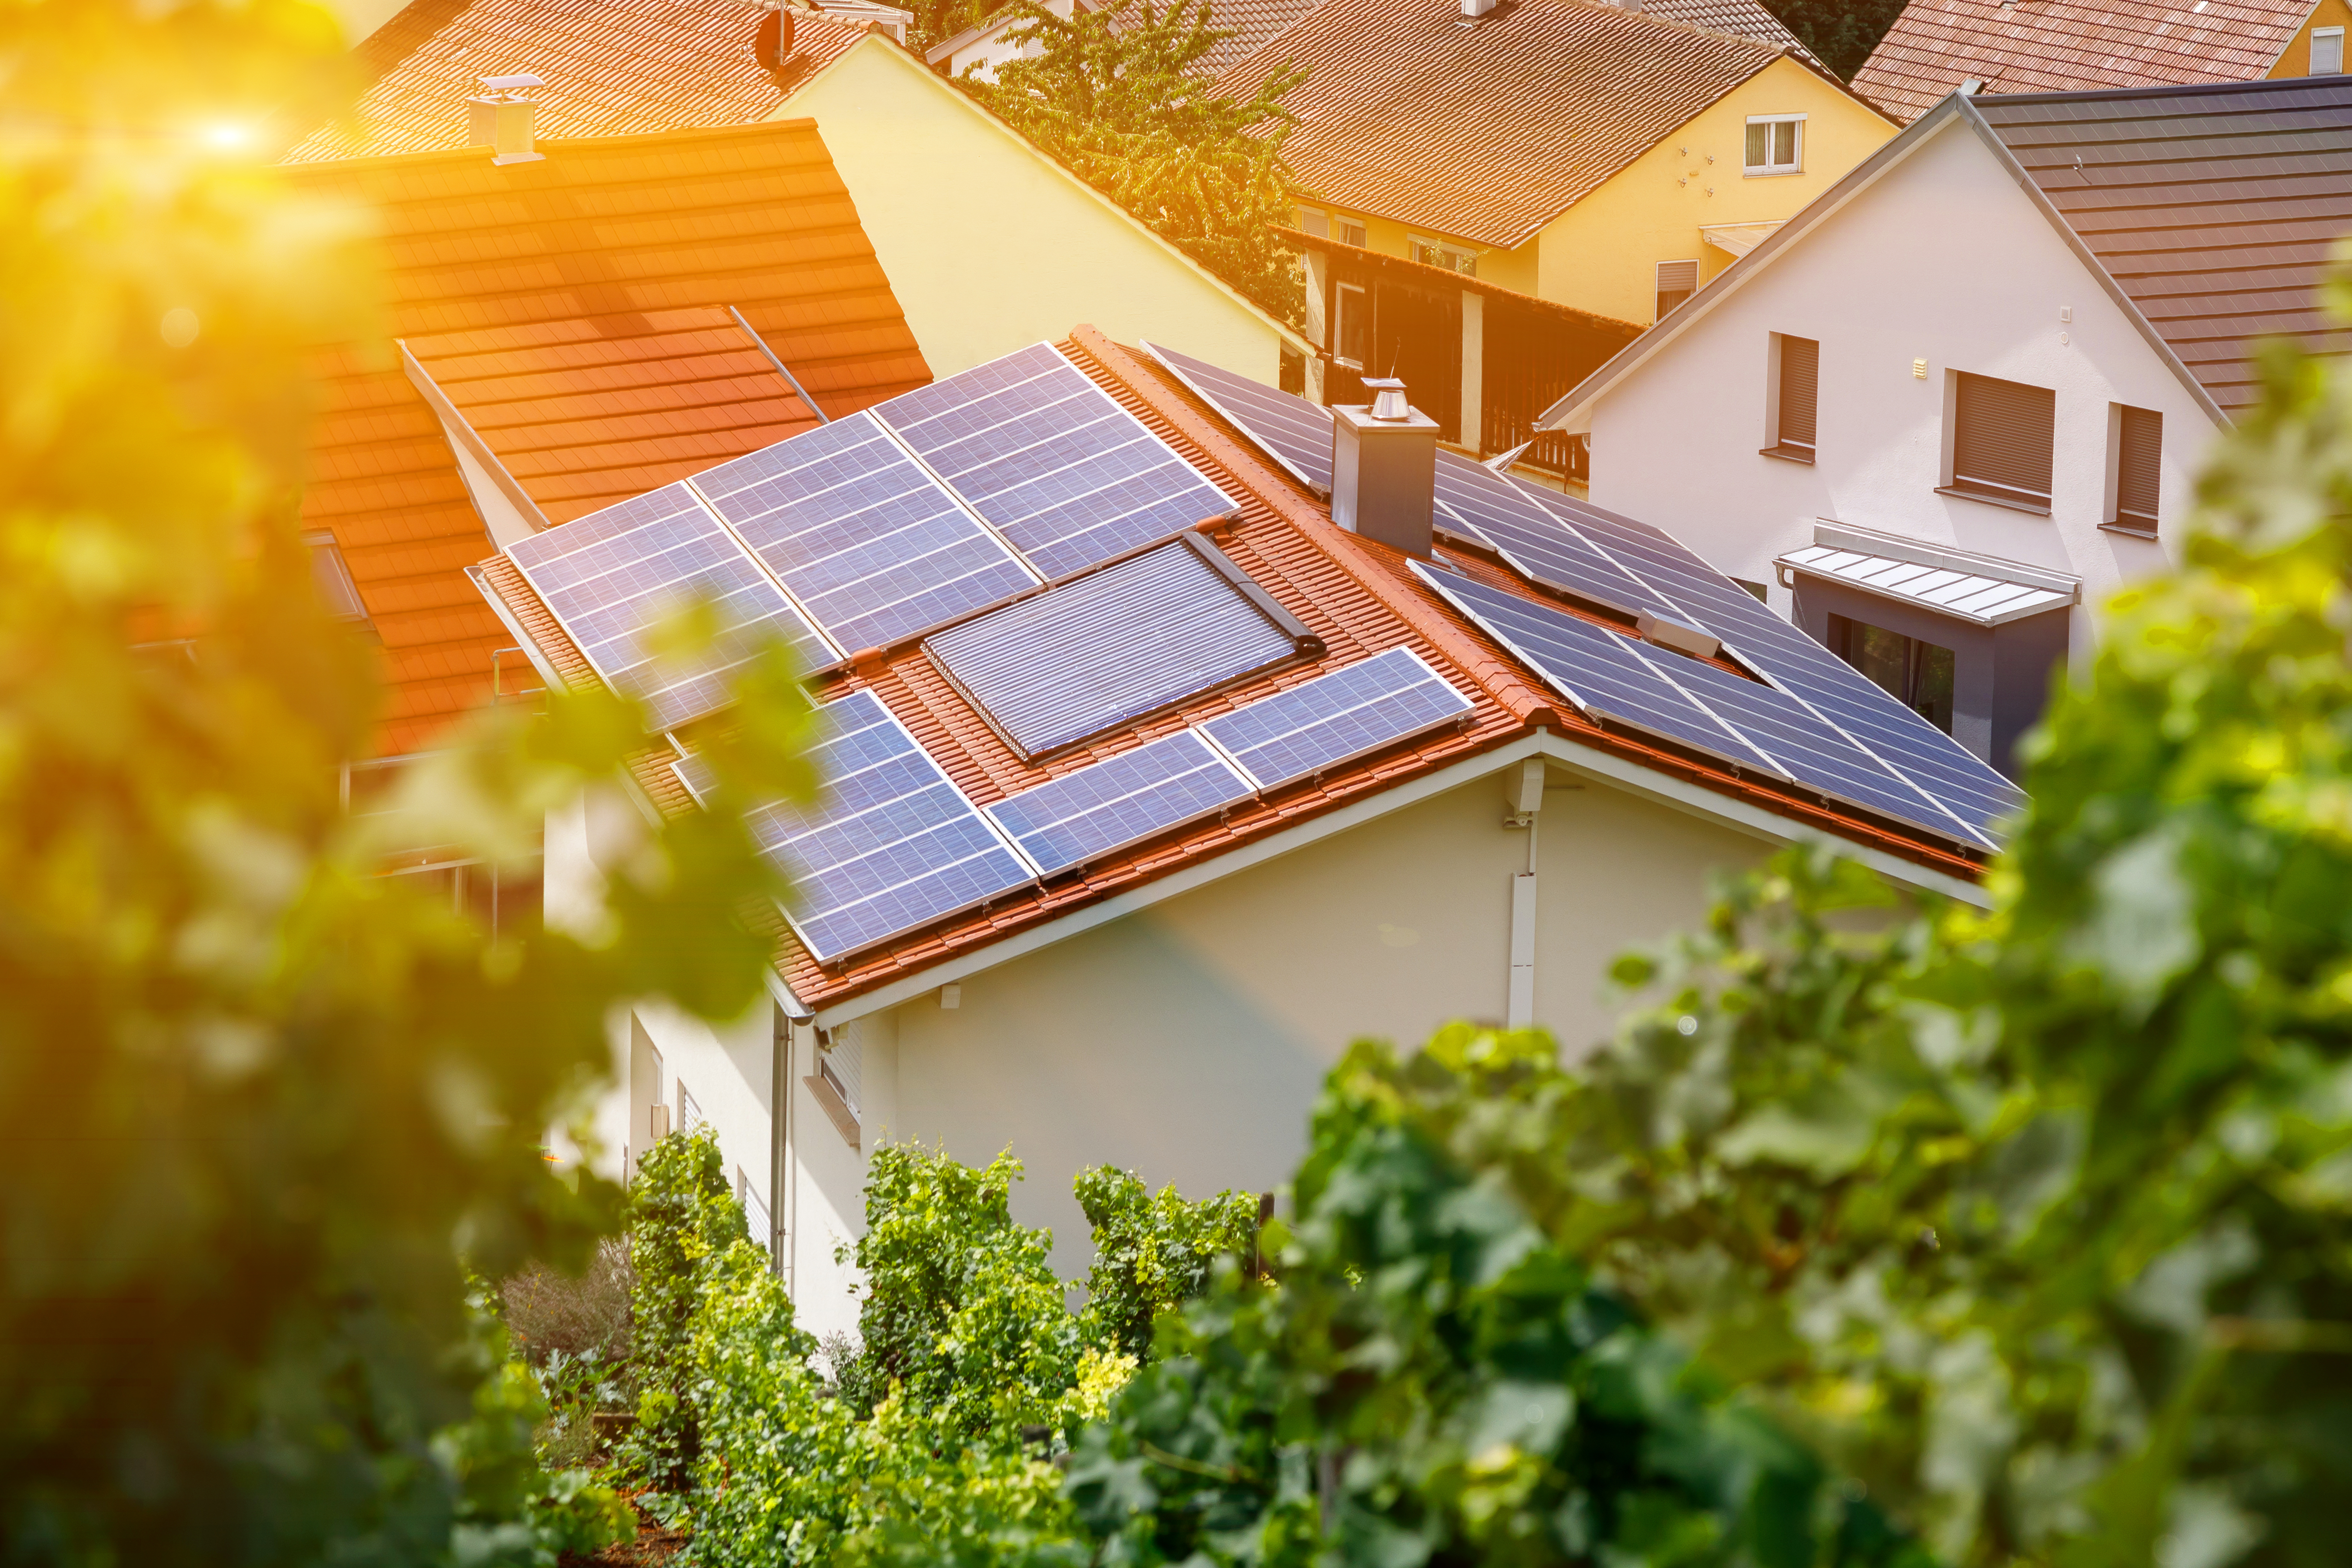 Uses Of Solar Energy In Daily Life